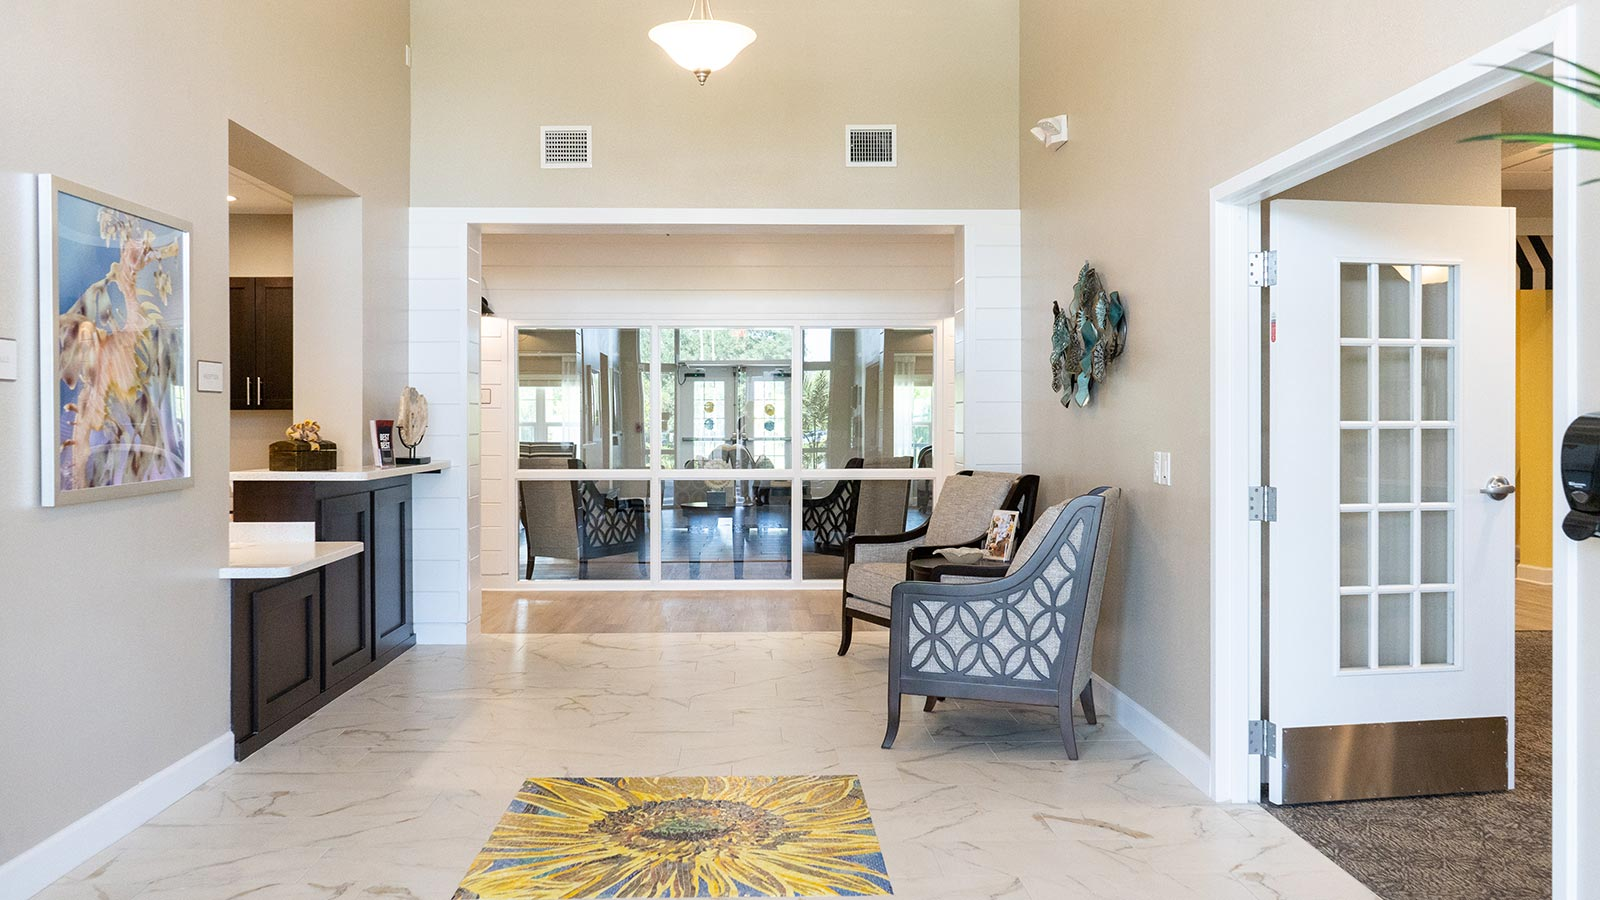 Sunflower Springs at Trinity main lobby and concierge desk